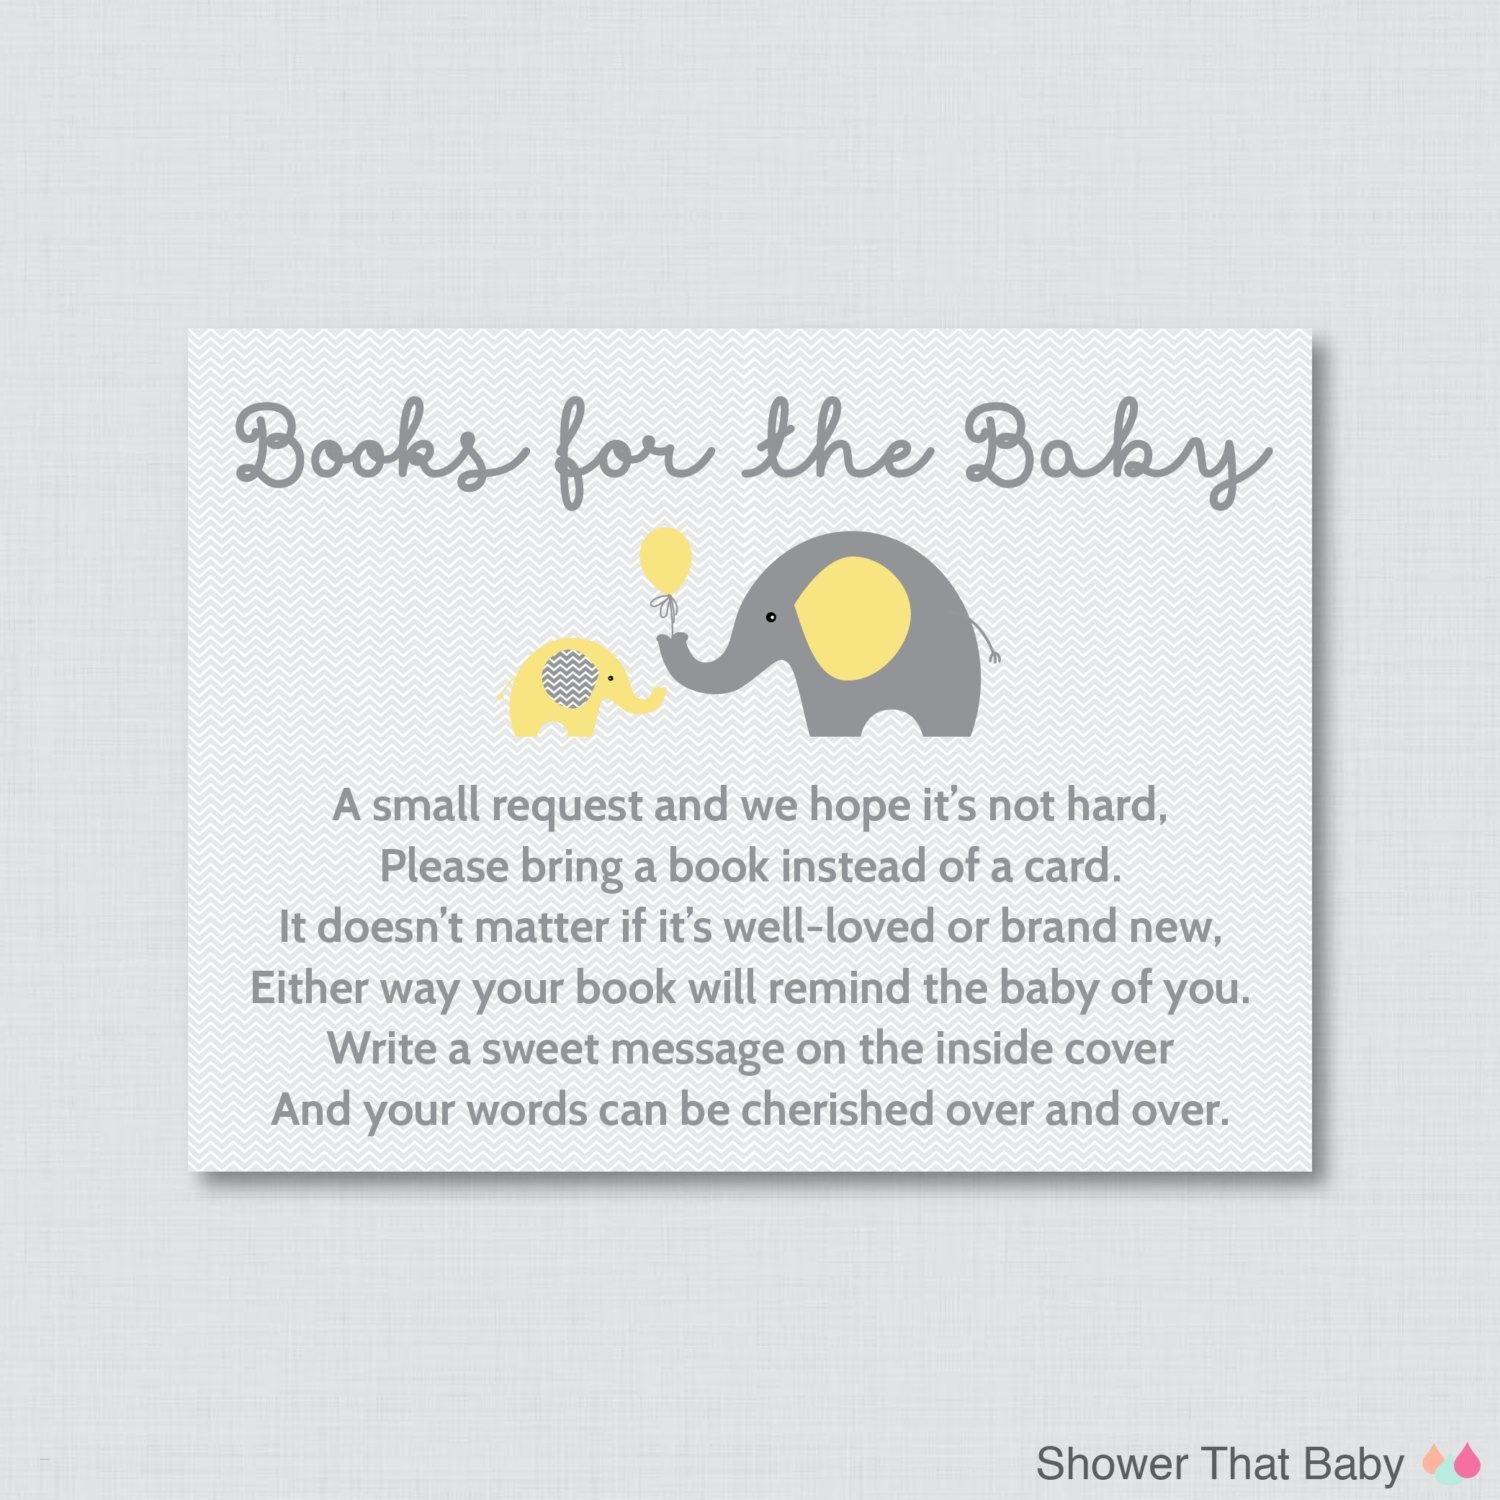 Full Size of Baby Shower:49+ Prime Baby Shower Card Message Photo Concepts Baby Shower Names Baby Shower Photos Baby Shower Recipes Baby Shower De Niño Recuerdos De Baby Shower Baby Shower Images